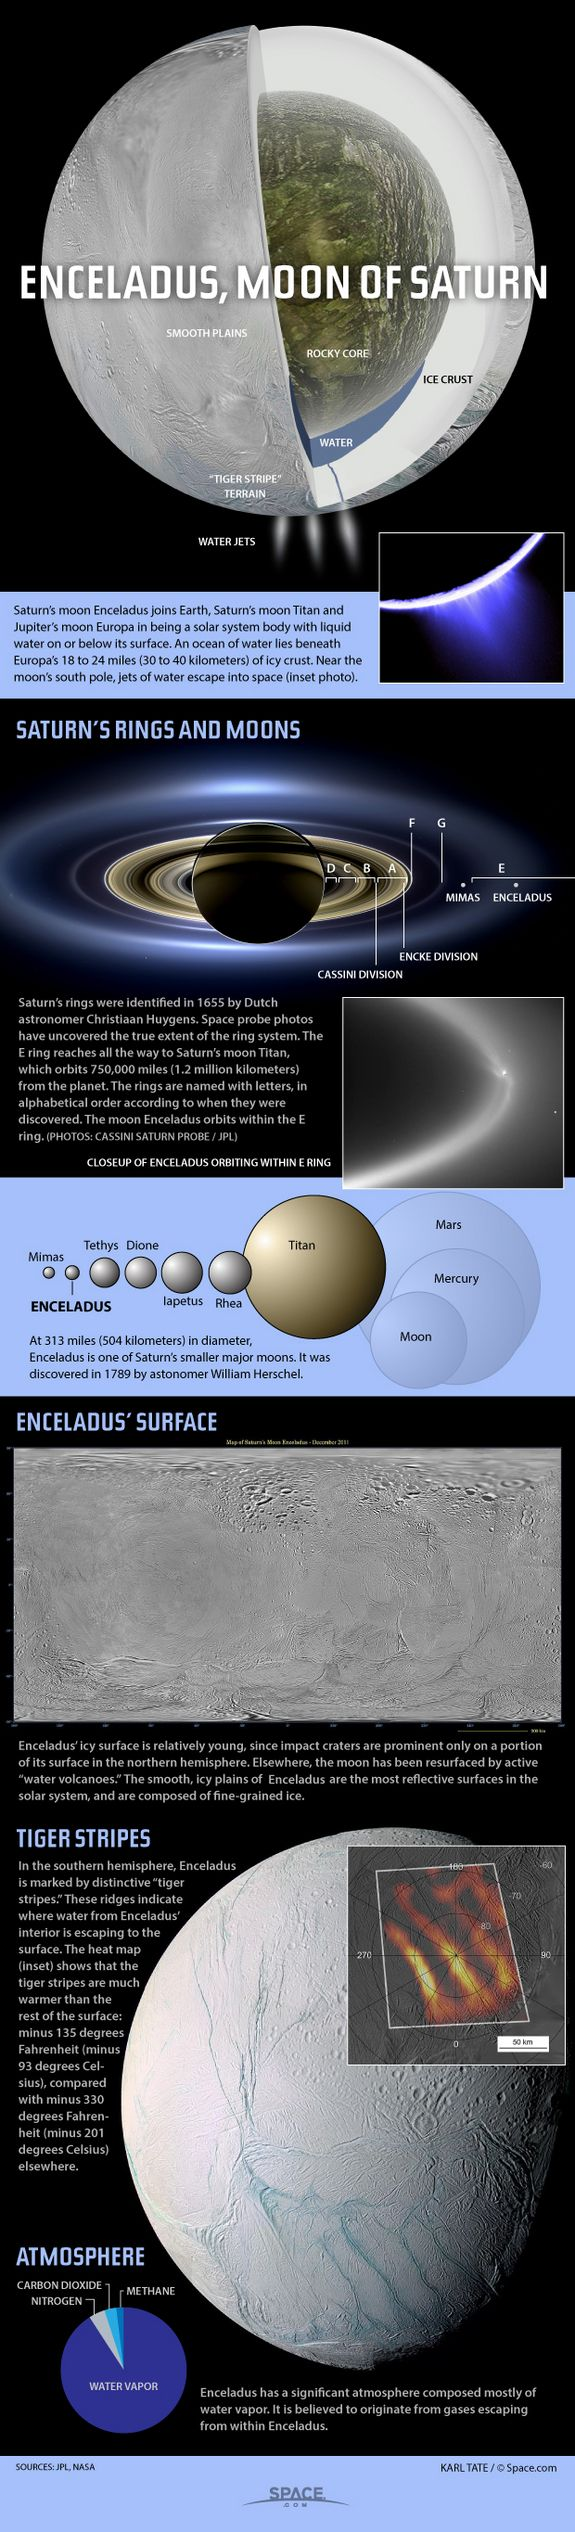 Inside Enceladus, Icy Moon of Saturn (Infographic)  The geography and interior of Enceladus.